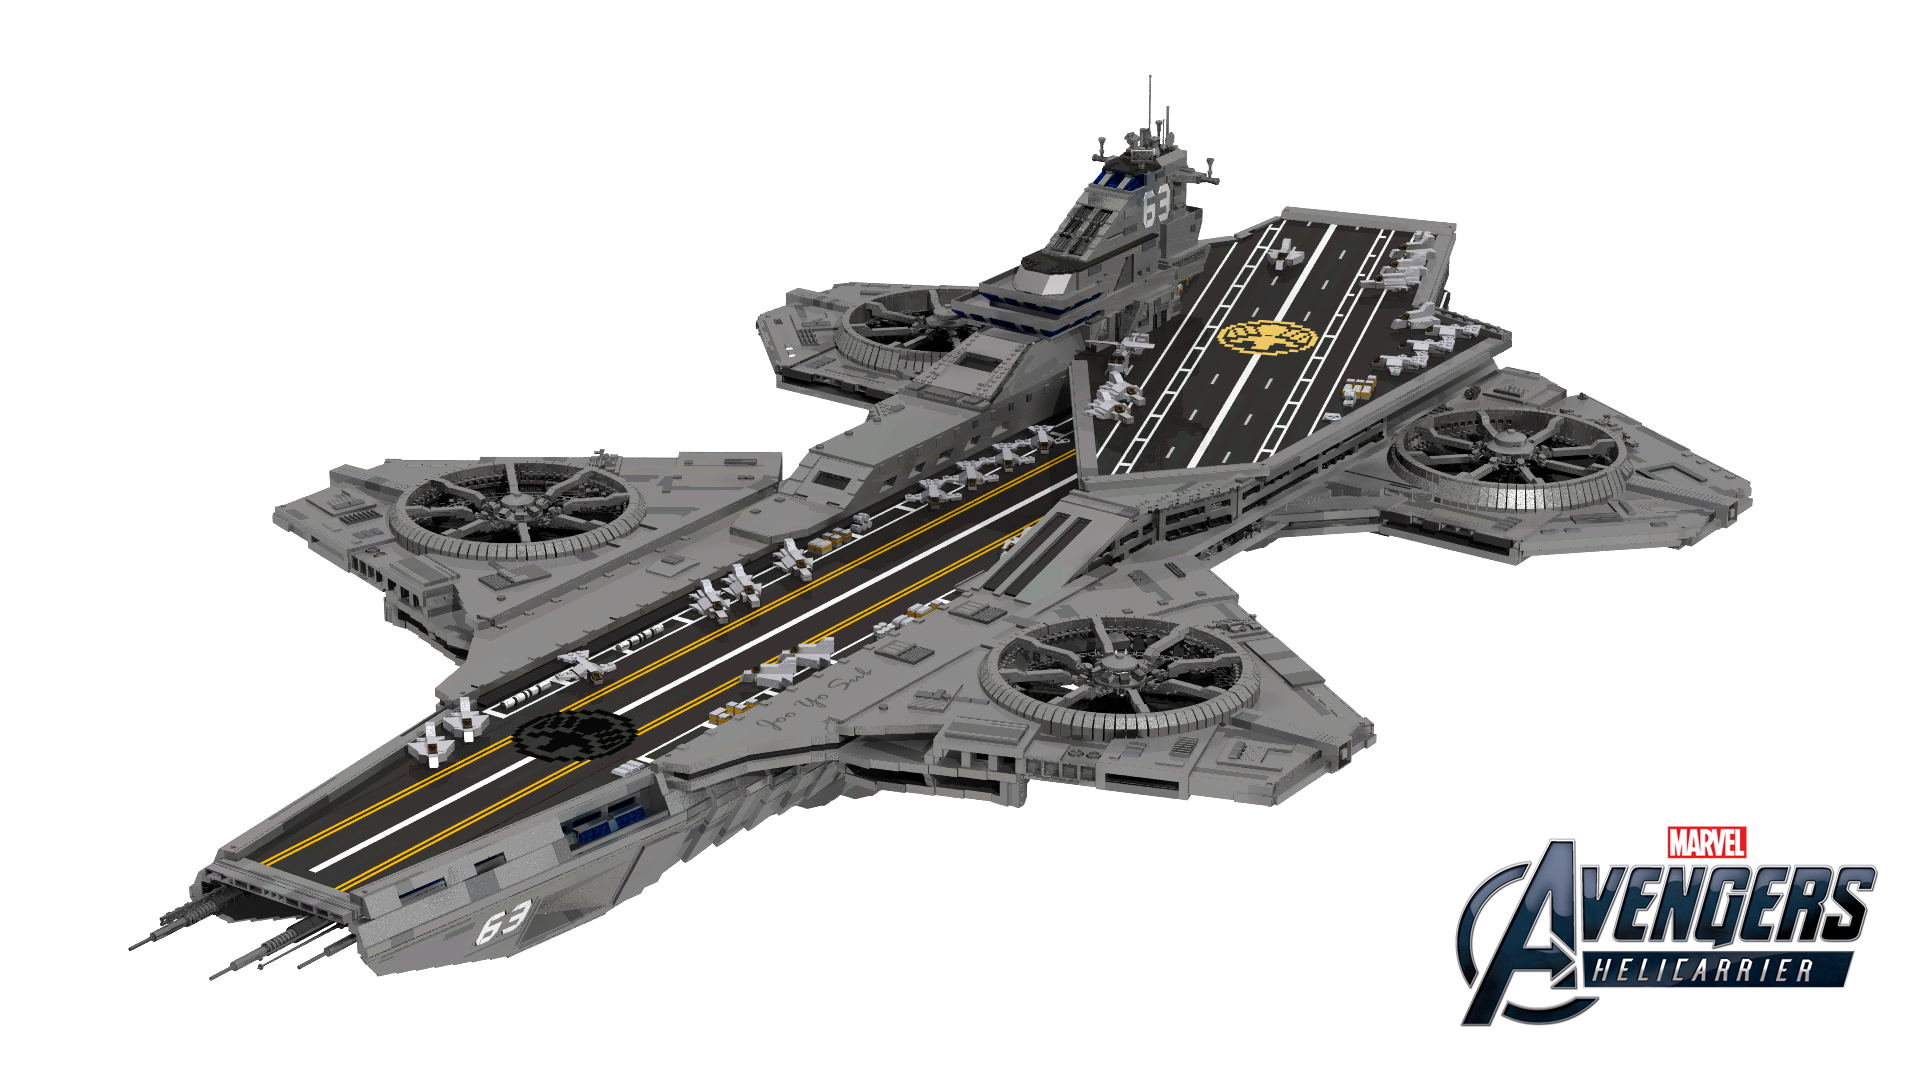 Lego Avengers Helicarrier Created By In Young Joo